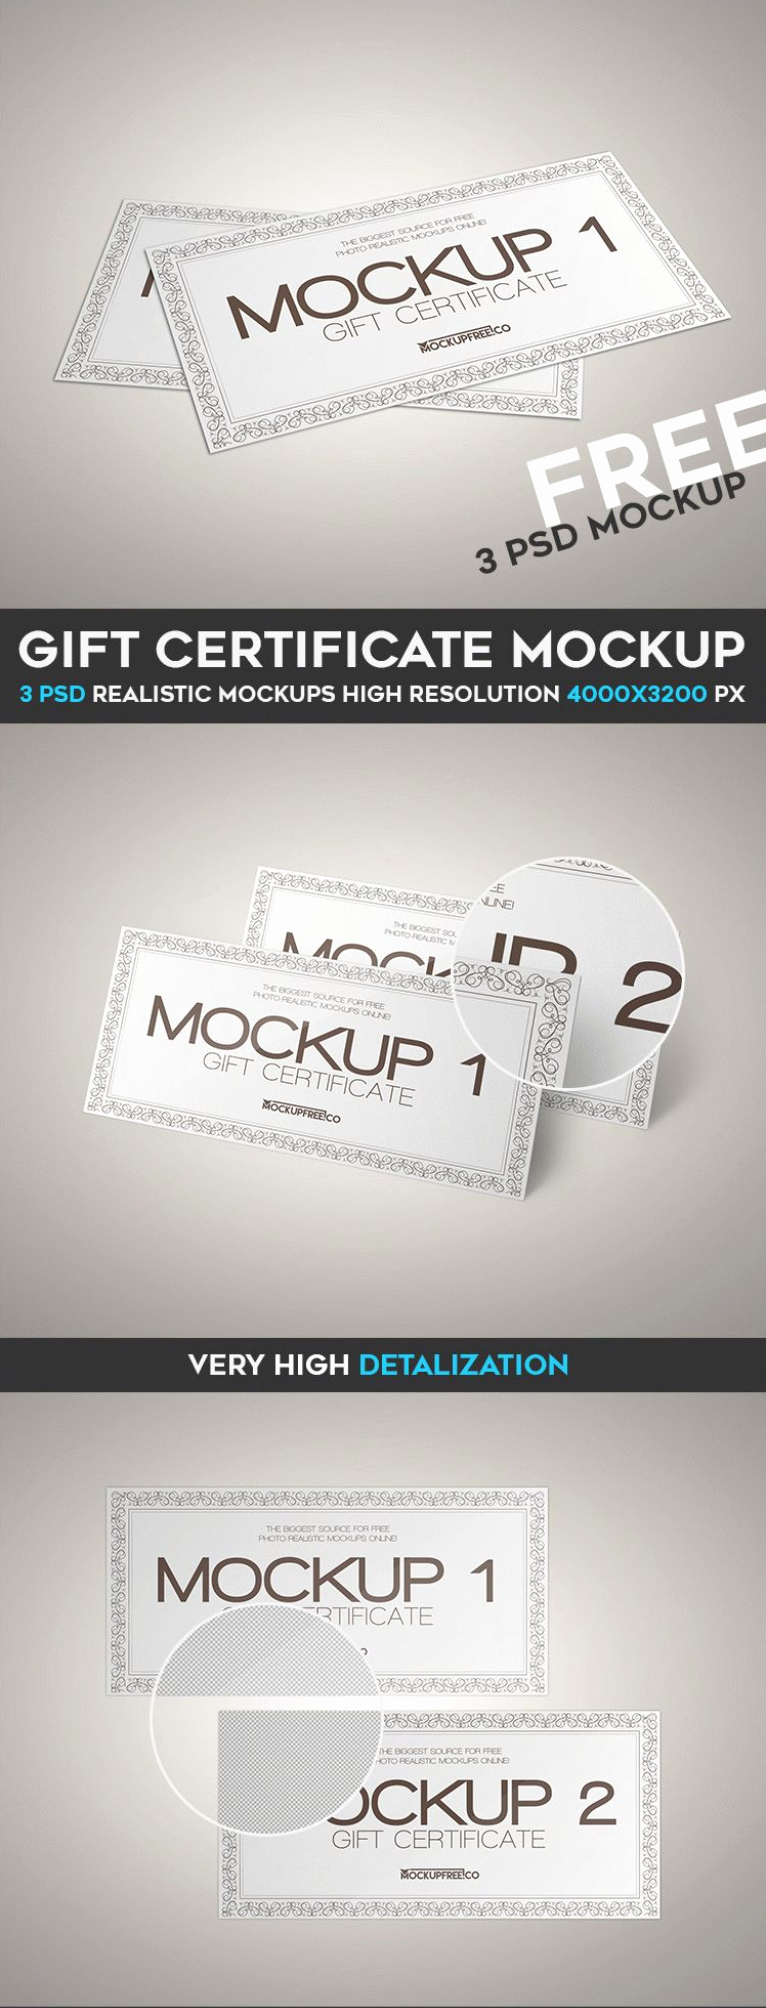 Gift Card Template Psd Best Of Gift Certificate Psd Mockup Templates Wooskins